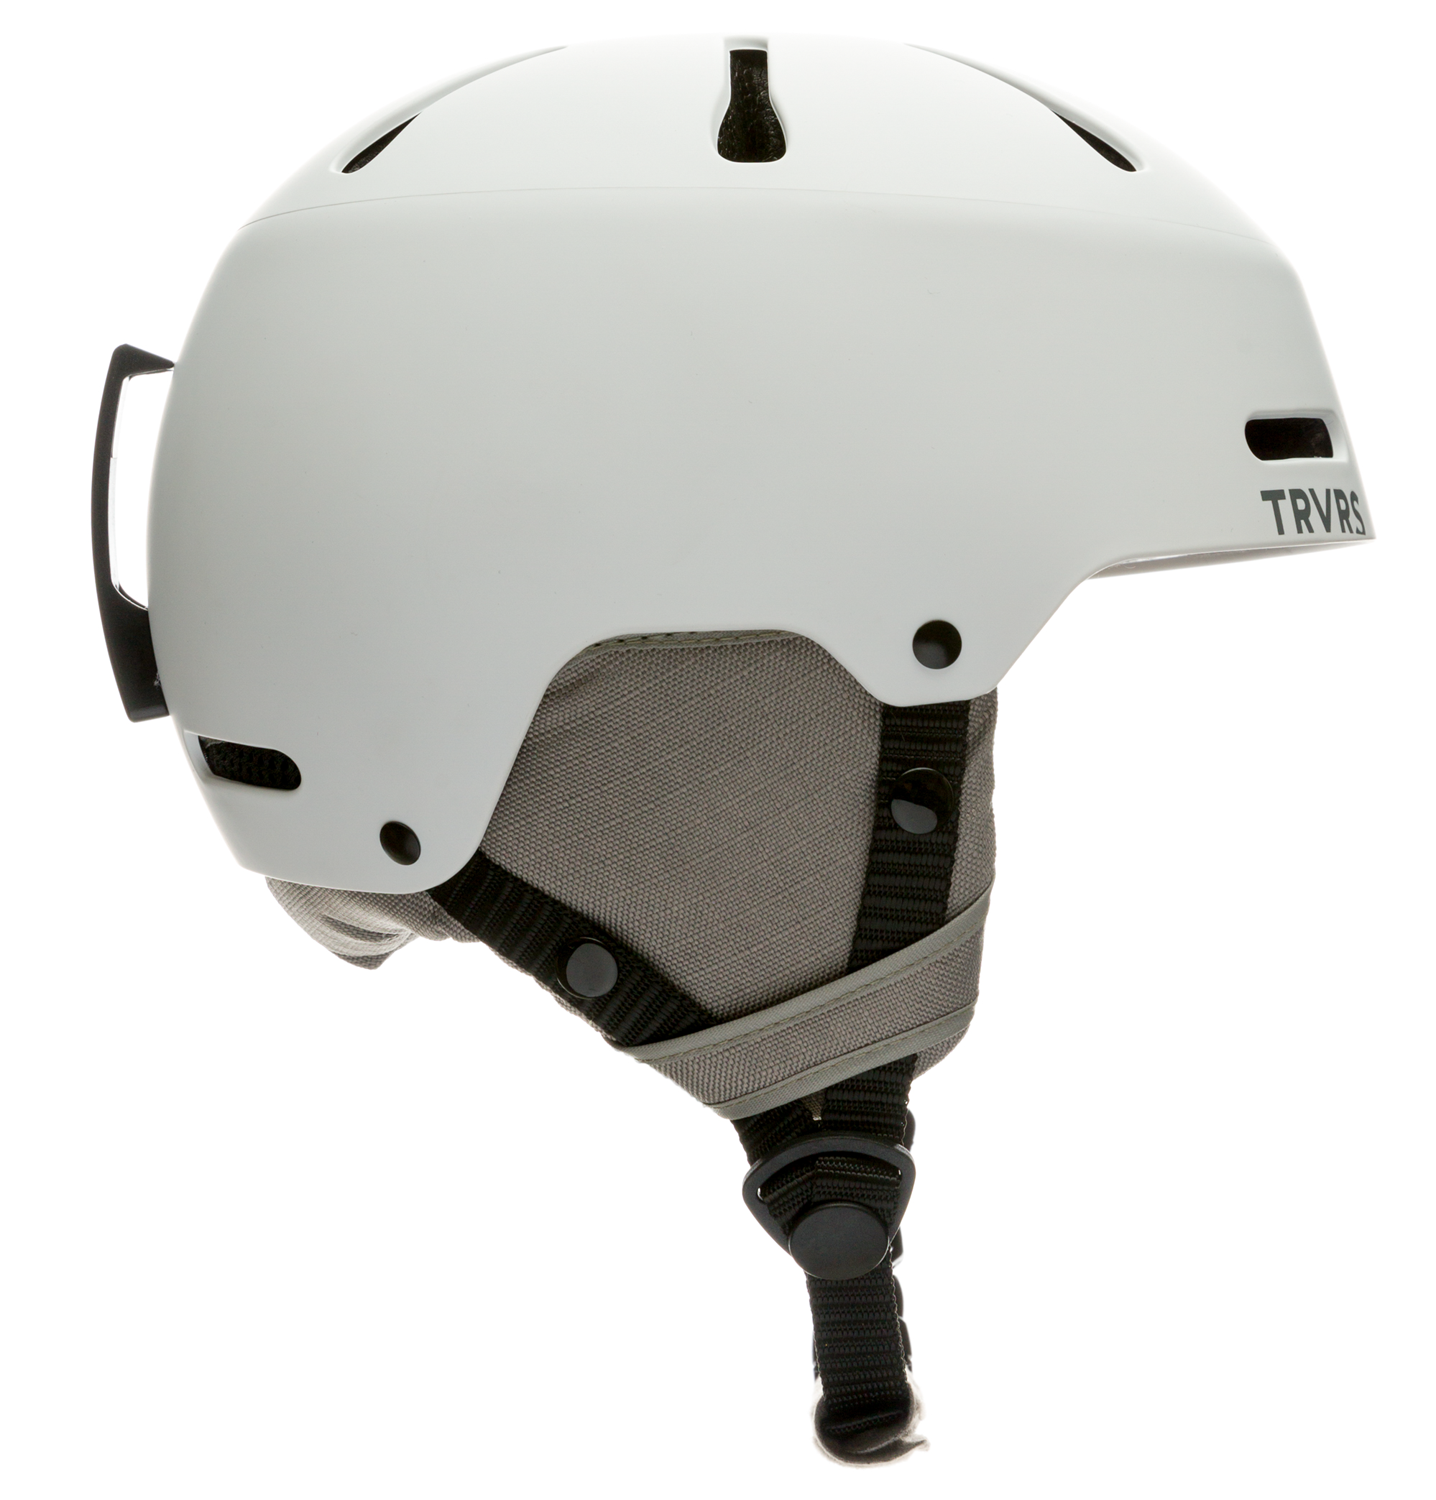 Traverse Sparrow Youth Ski, Snowboard, and Snowmobile Helmet, Matte White, X-Small (48-51.5cm) by Traverse